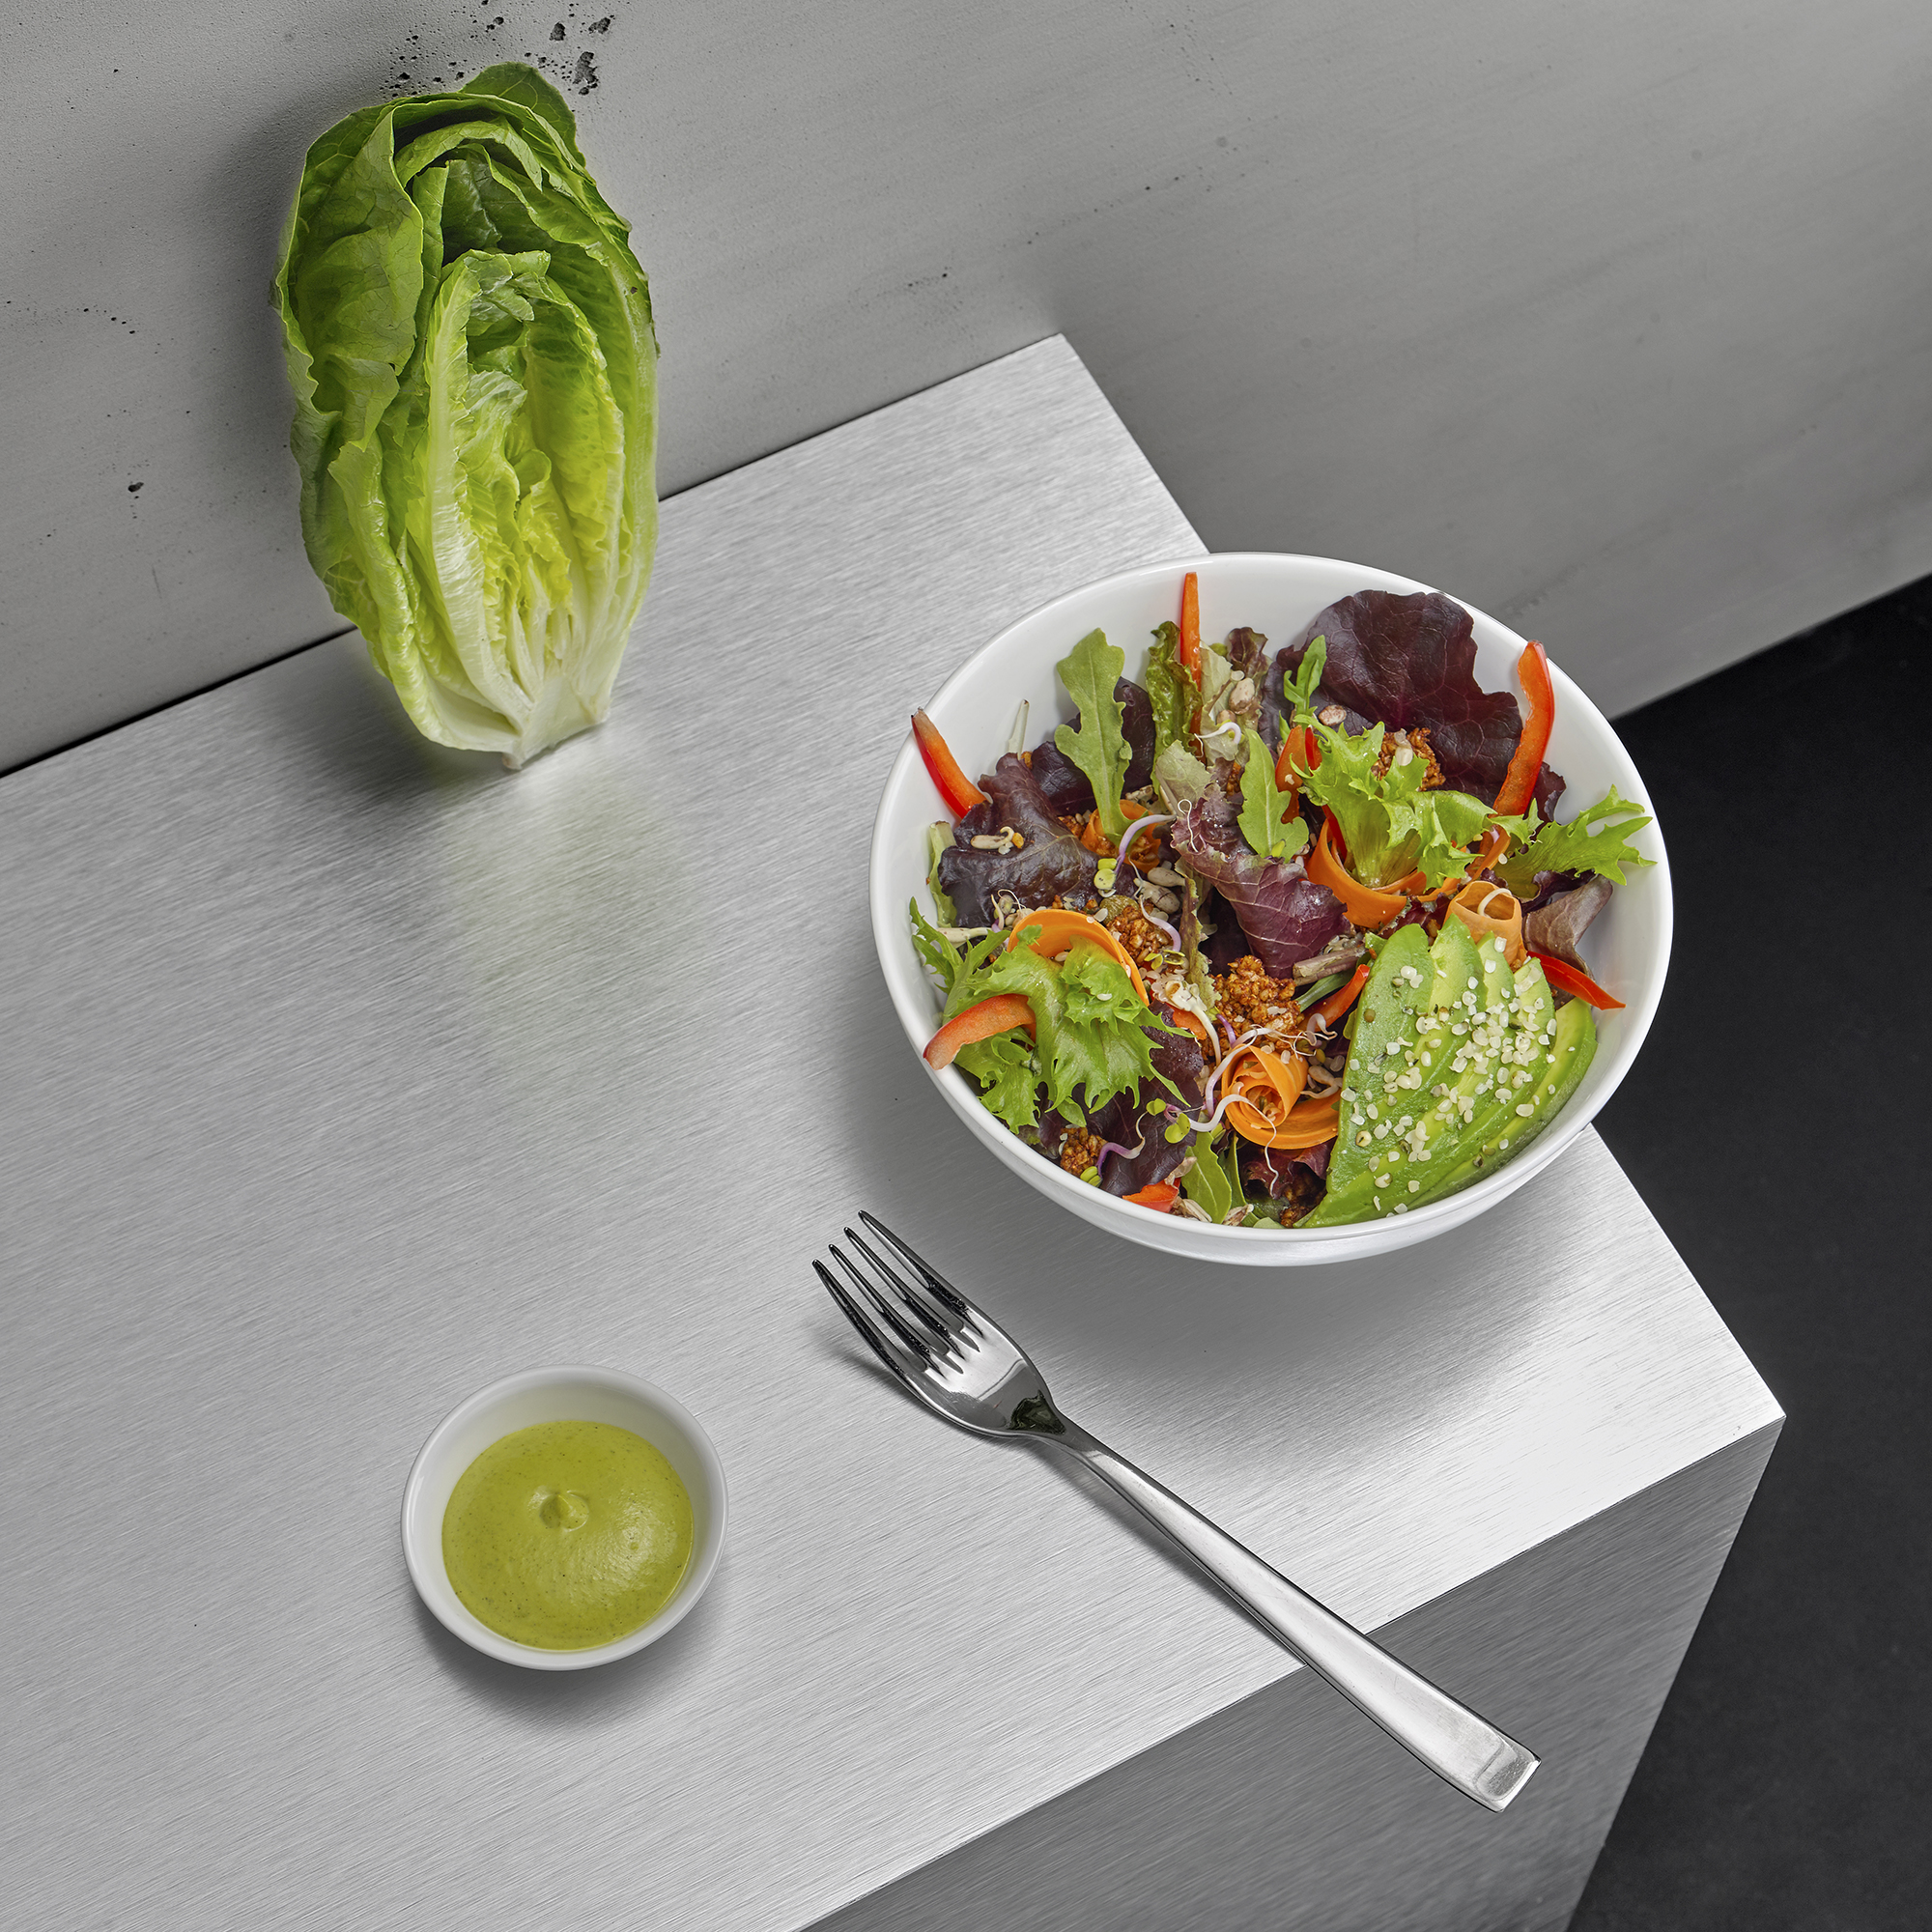 Still life food and drink photographer. A salad with fork, location photography industrial style restaurant in London. Howlett Photography